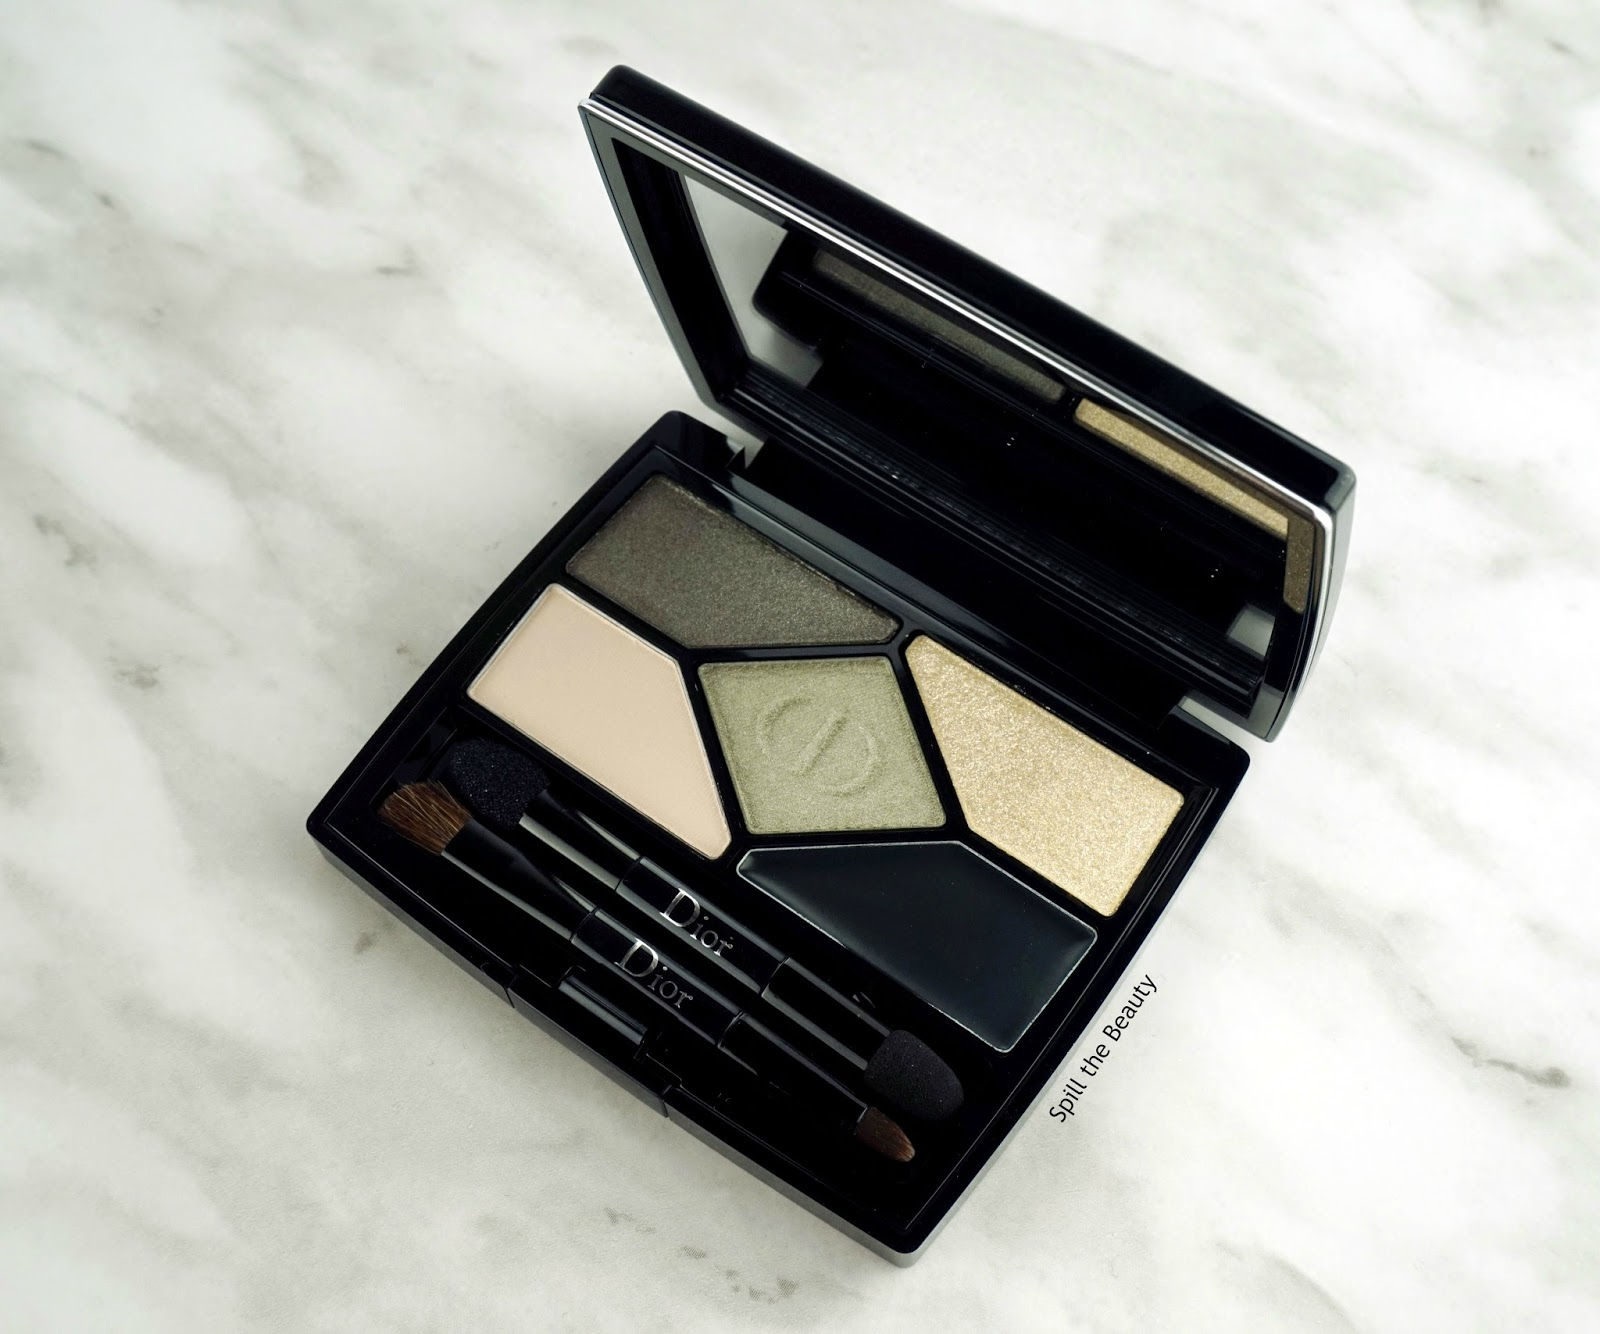 Dior 5 Couleurs Designer Palette in 'Khaki Design'